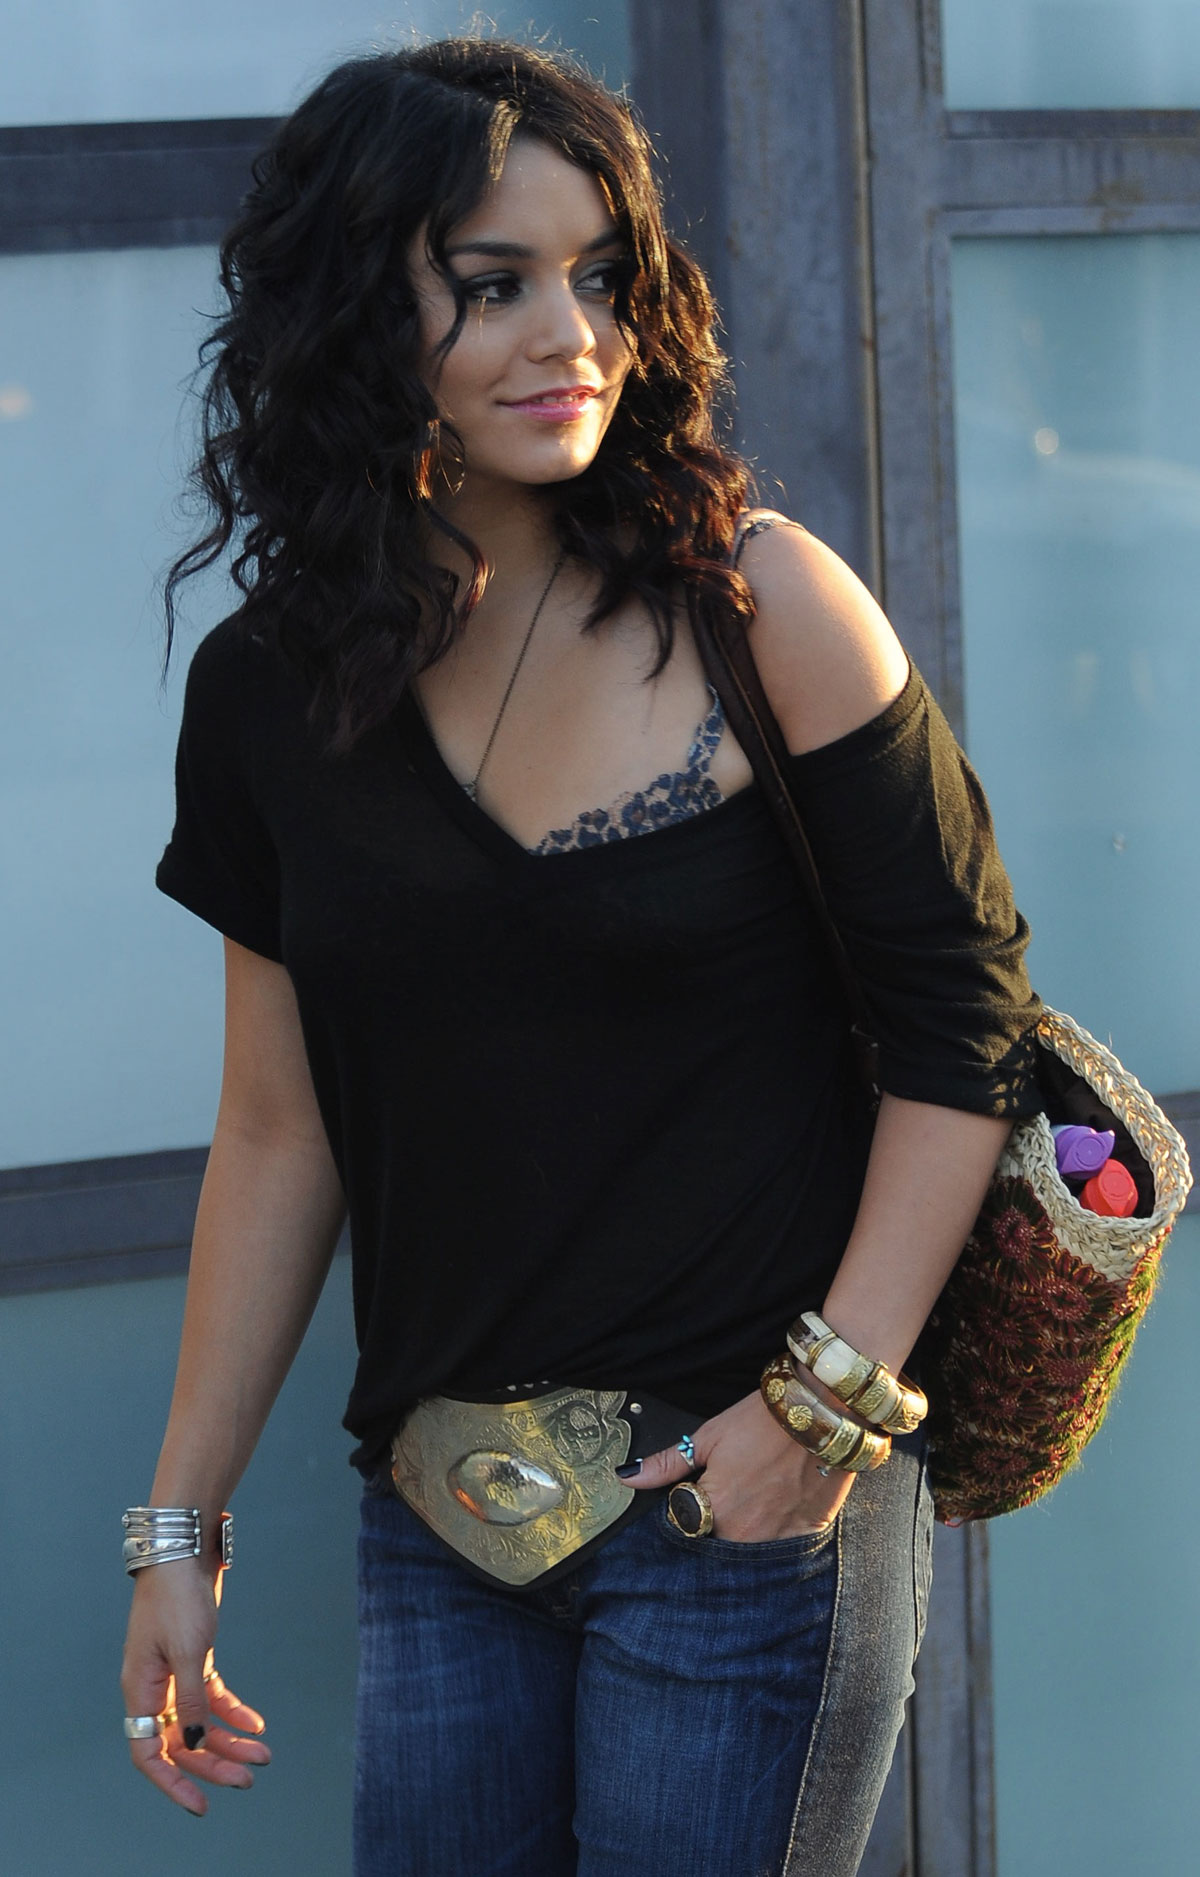 VANESSA HUDGENS in Jeans Out and About in Venice - HawtCelebs Vanessa